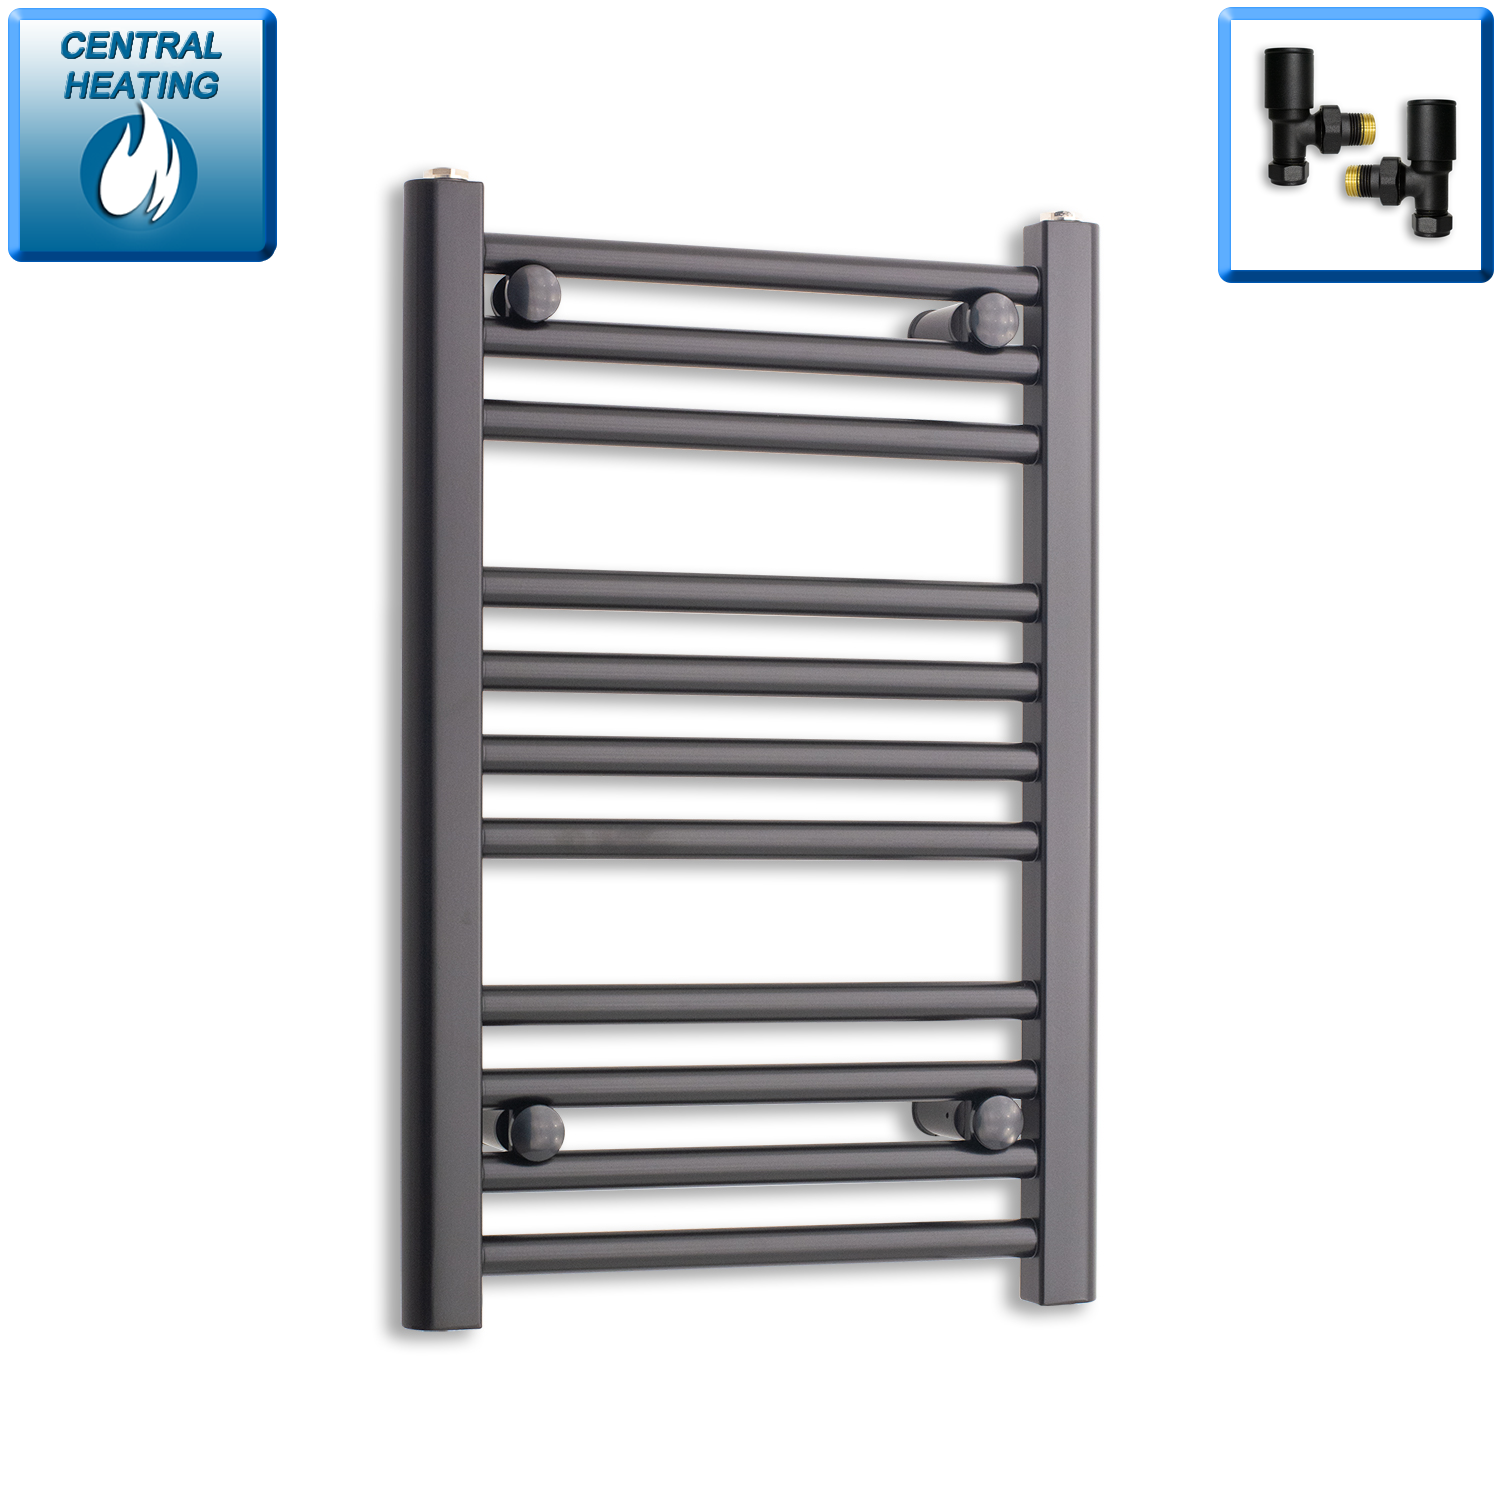 400mm Wide 600mm High Flat Black Heated Towel Rail Radiator,With Angled Valve